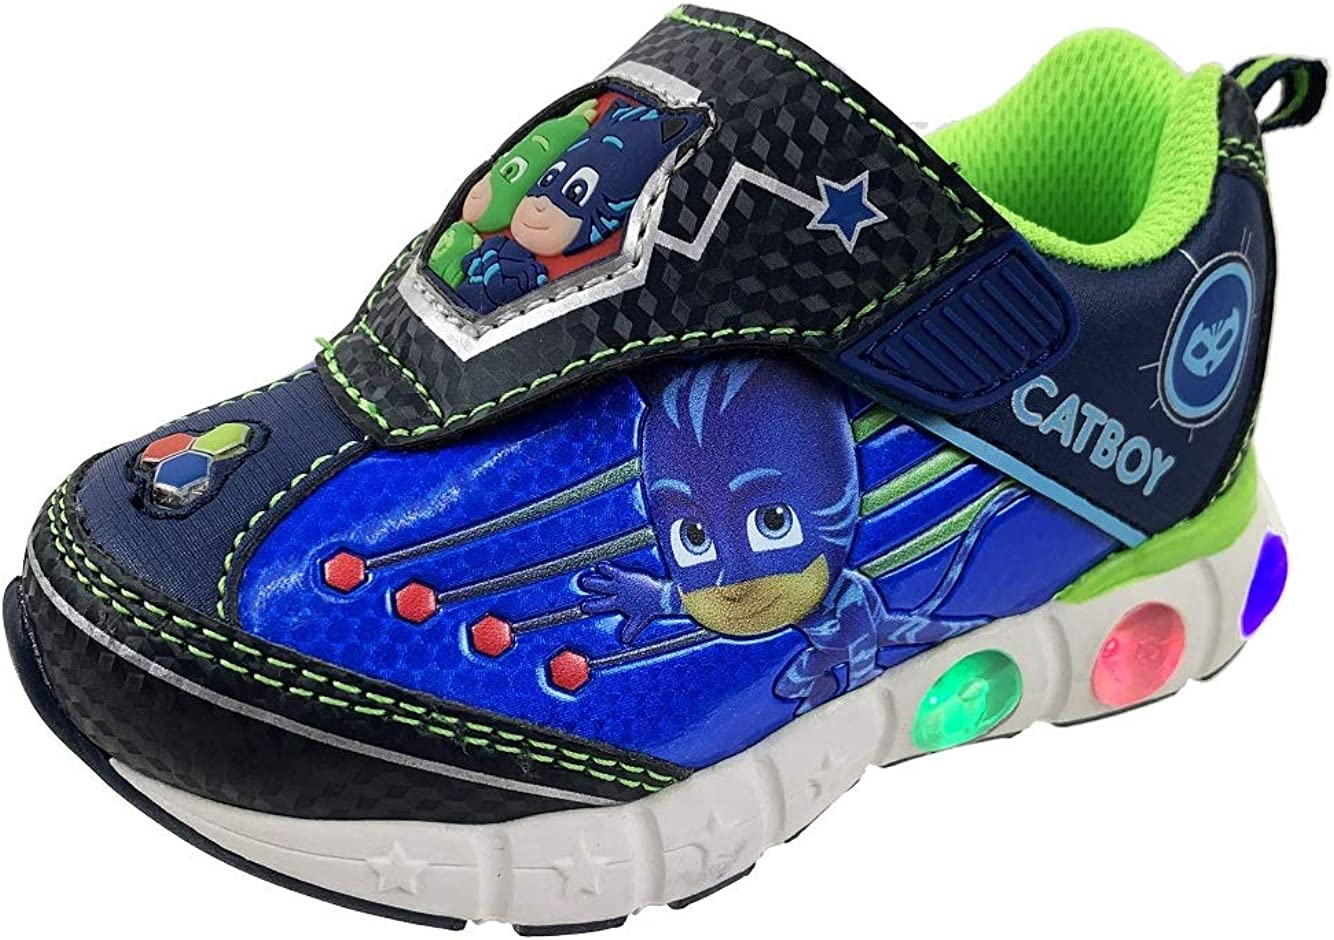 PJ Masks In a popularity Boys' lowest price Athletic Shoe Sneaker Light-Up